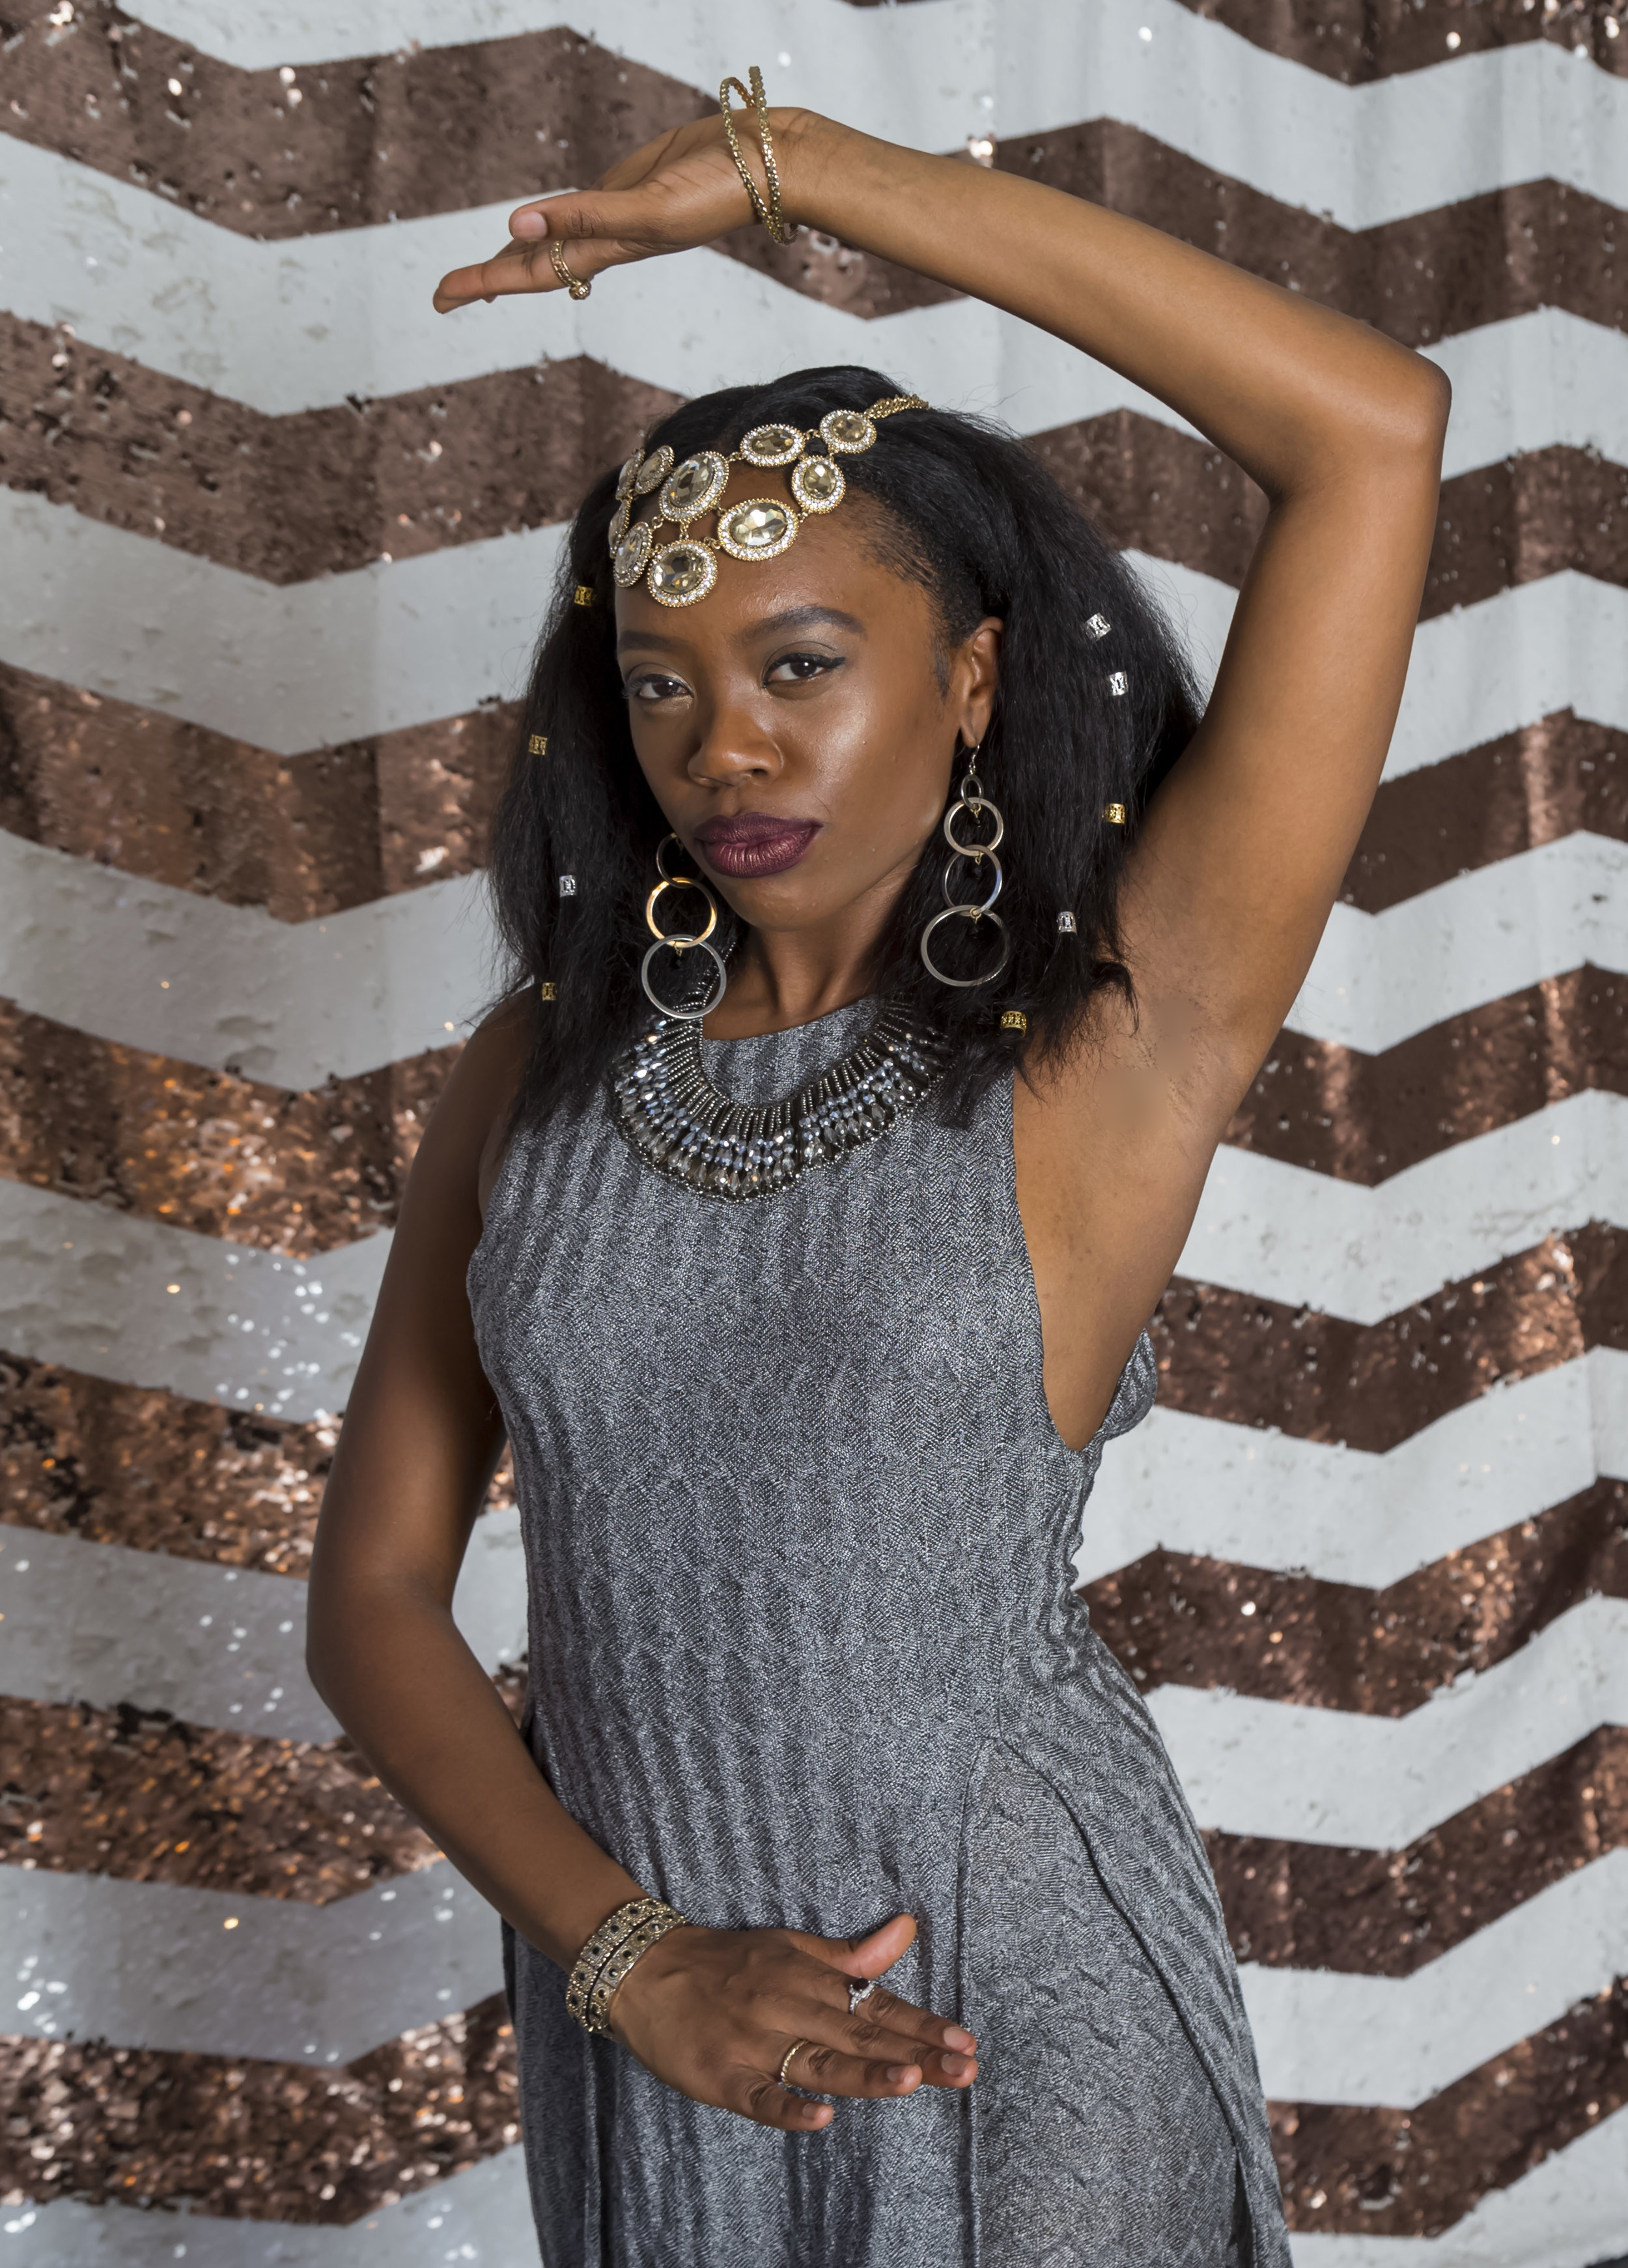 Akilah Walker as 'Cleopatra' from 'Antony And Cleopatra' by William Shakespeare  Photo by Haley Seppa